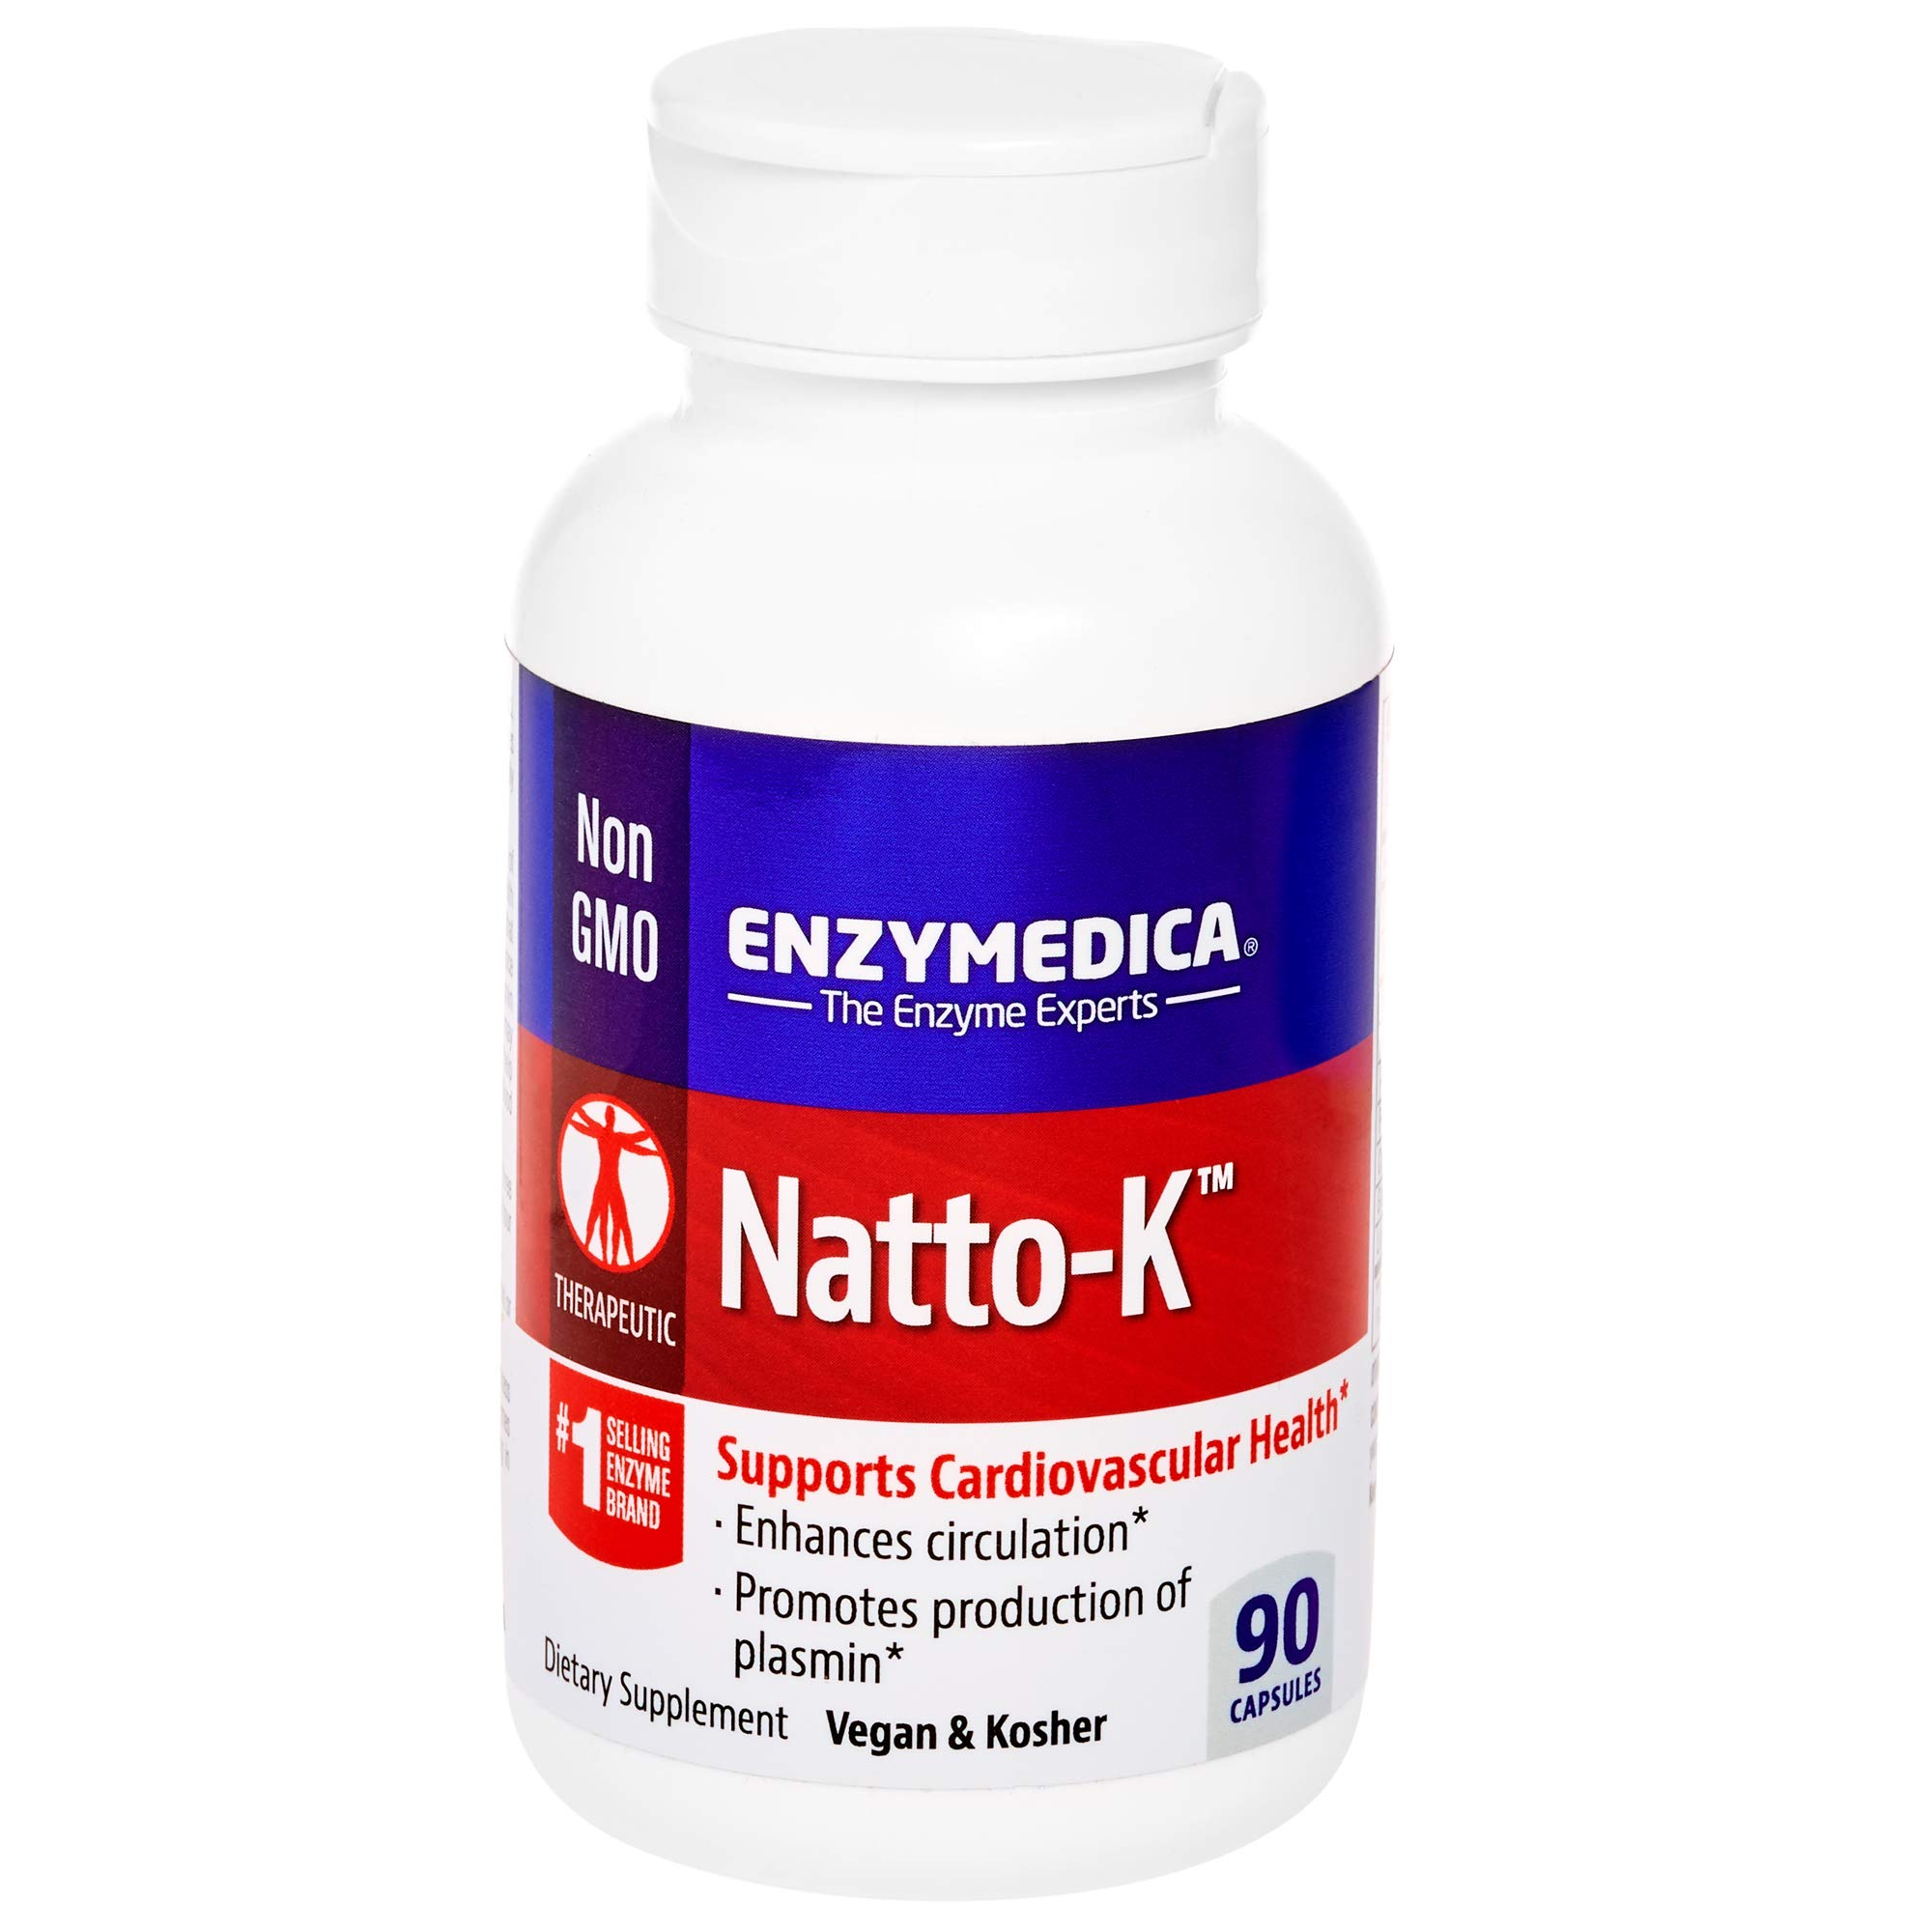 Enzymedica, Natto-K, Enzyme Supplement to Support Cardiovascular Health, Vegan, Kosher, 90 Capsules (90 Servings) (FFP) by Enzymedica